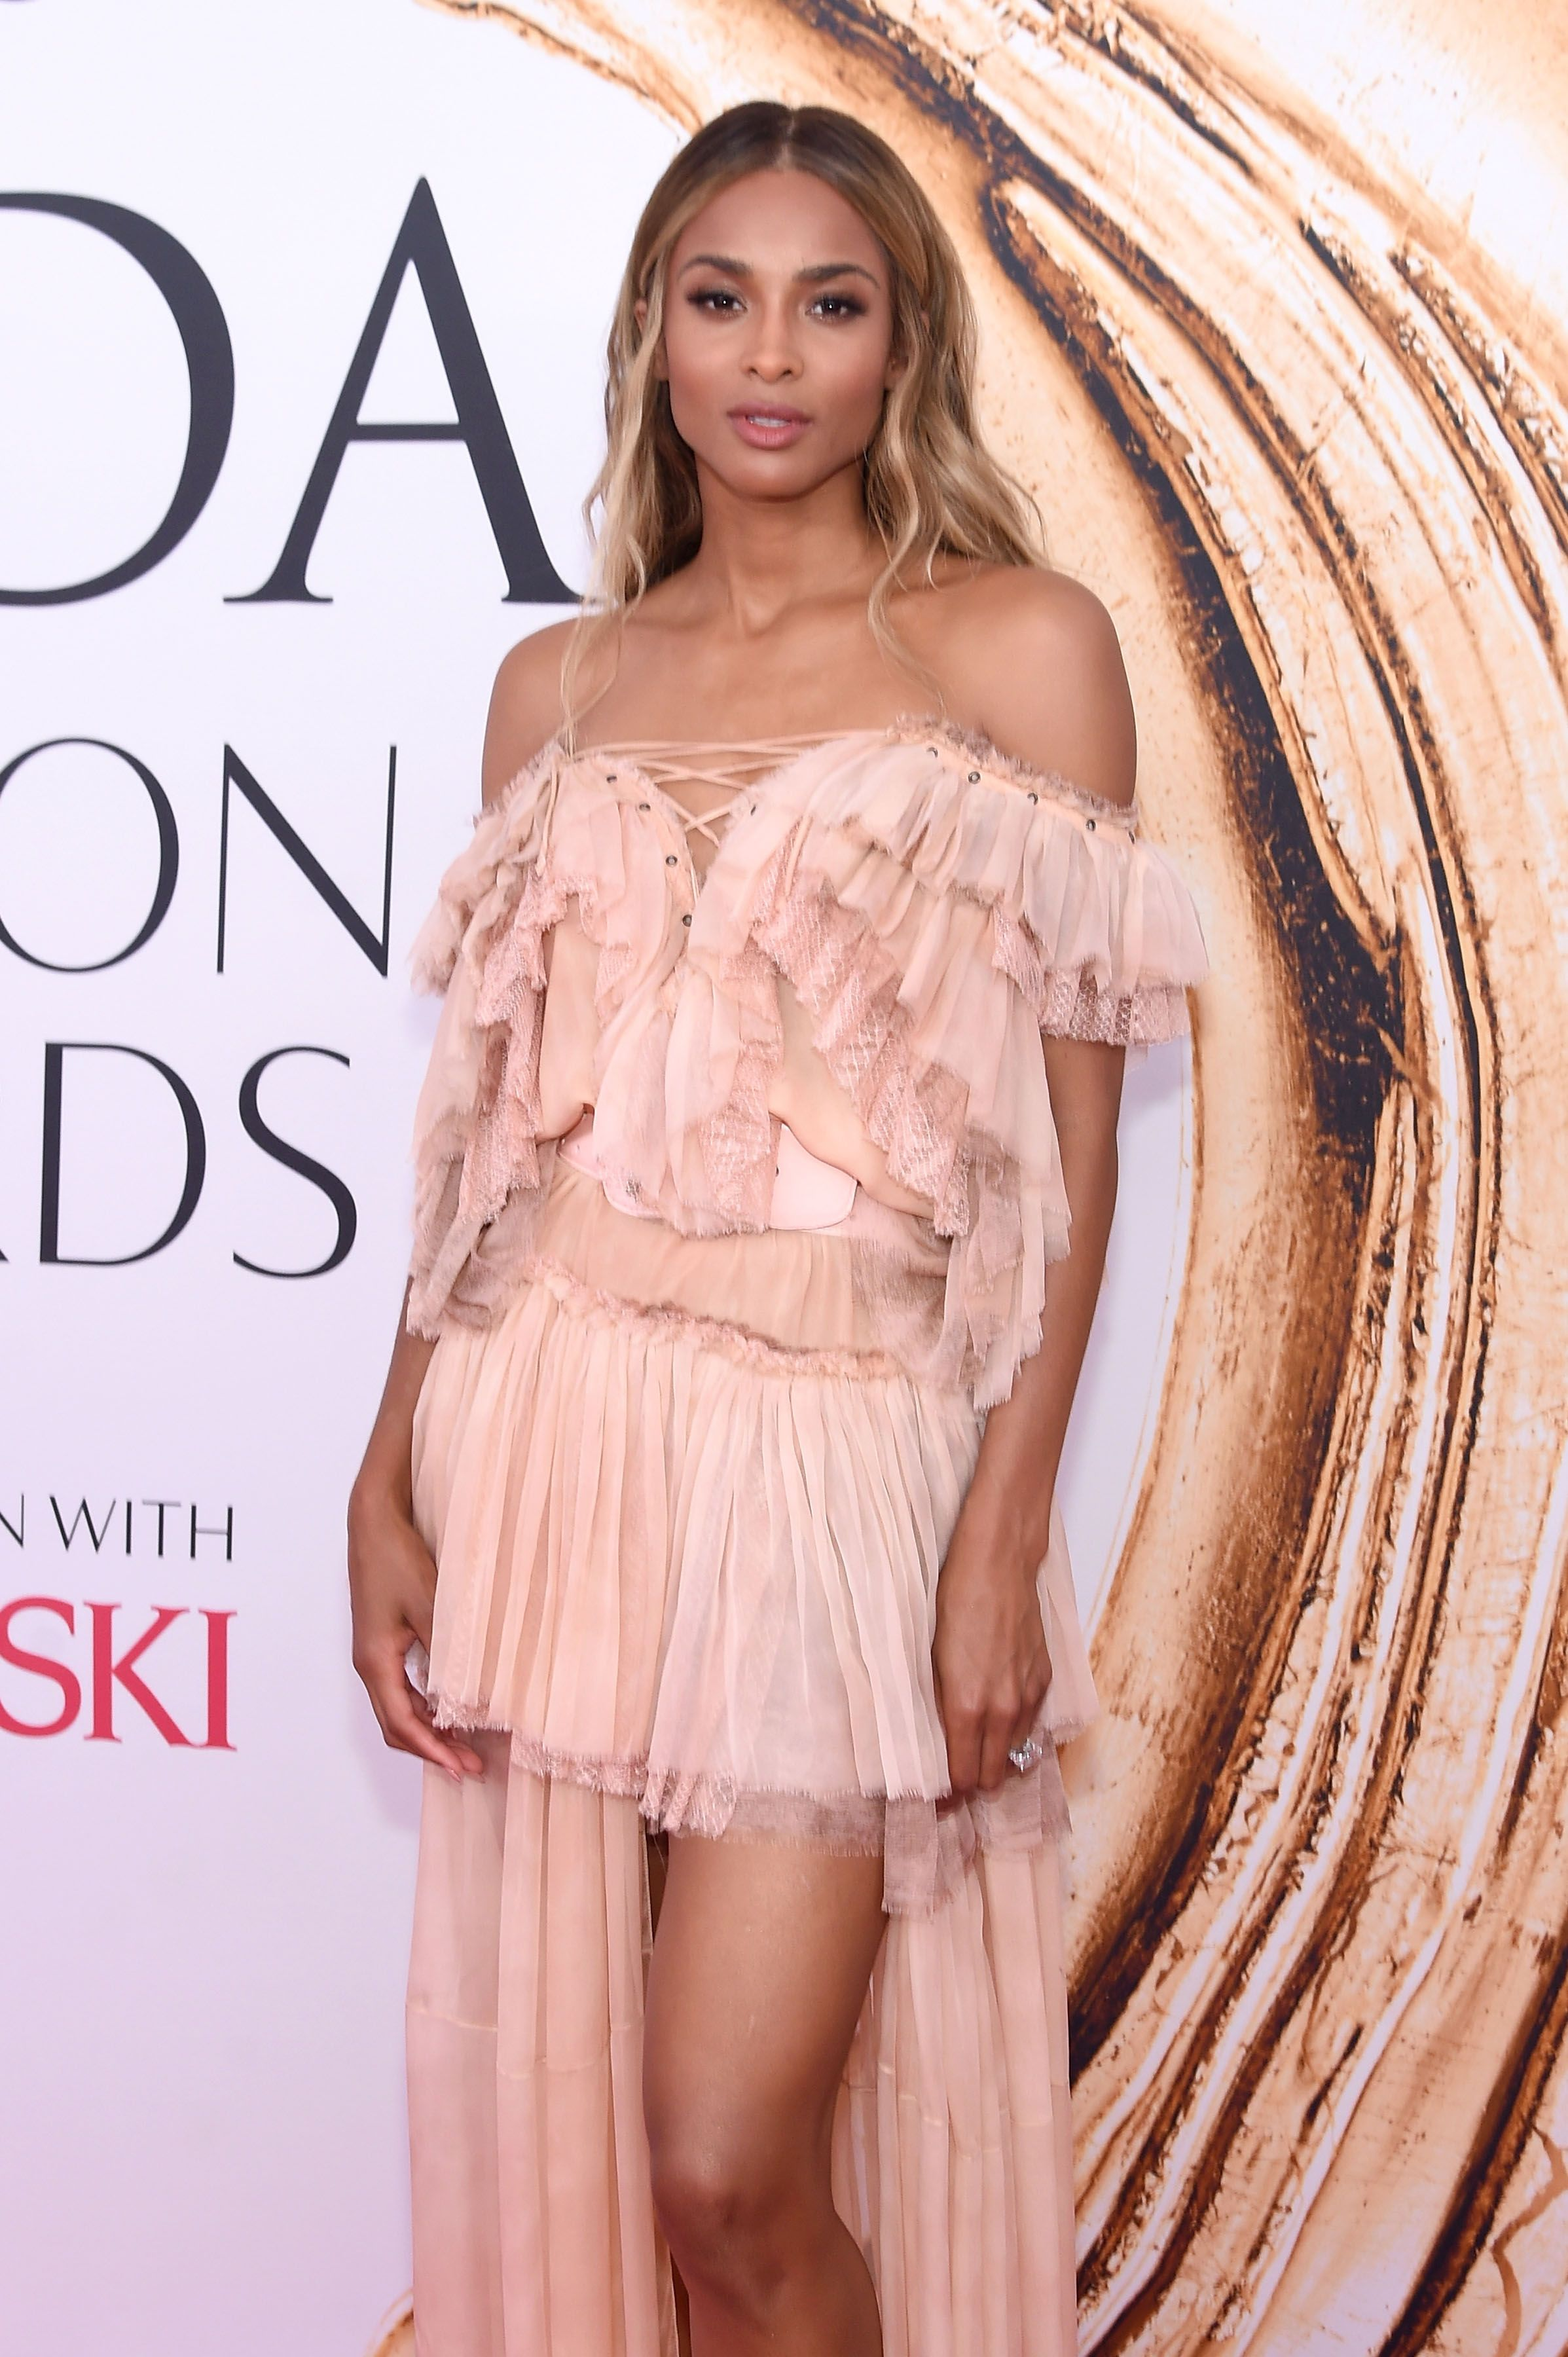 Ciara at the 6th CFDA Fashion Awards  in New York on June 6, 2016 | Photo: Getty Images